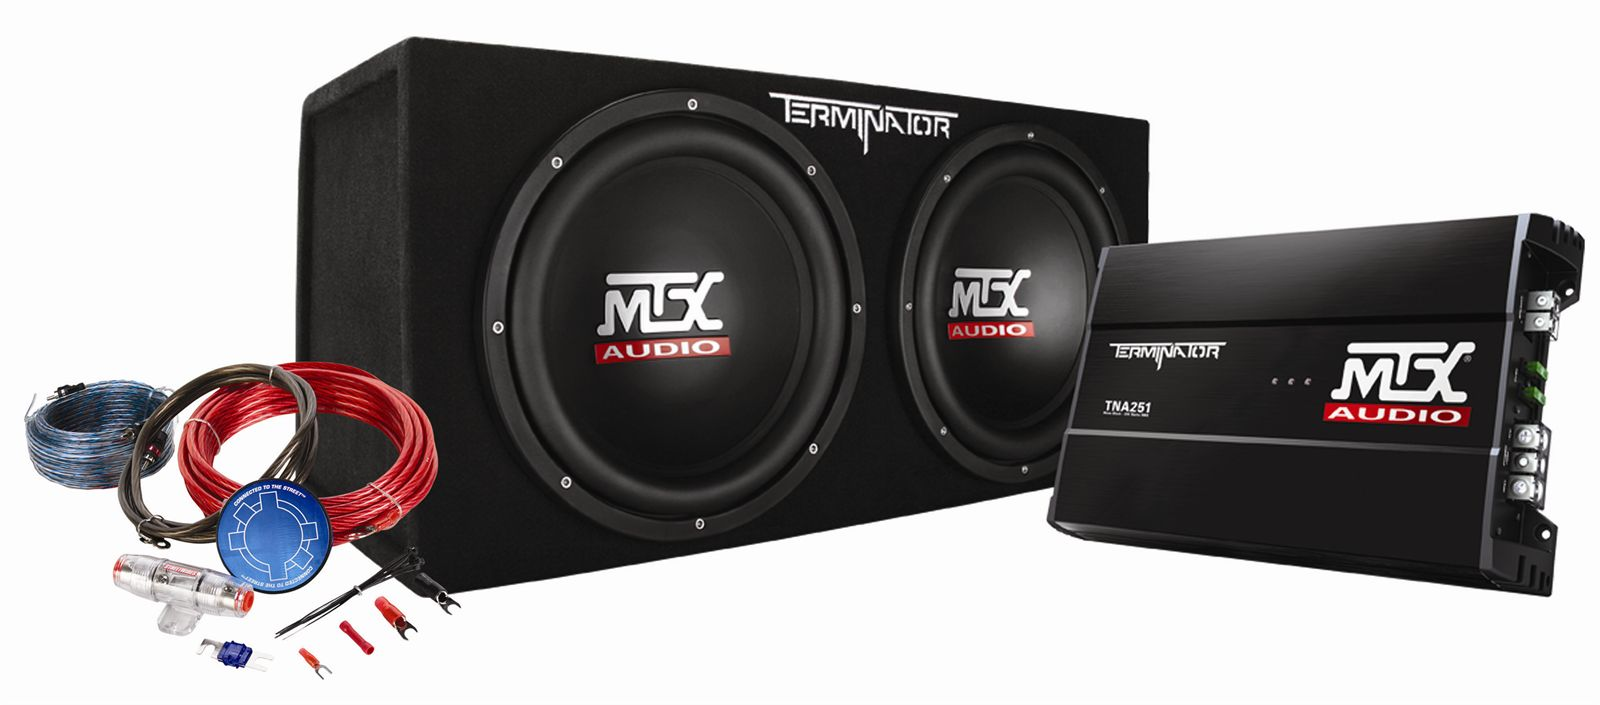 Tnp212d2kit Mtx Car Subwoofer Enclosure Amp Wiring Pckg Audio 800 Watt Amplifier Kit Serious About Sound